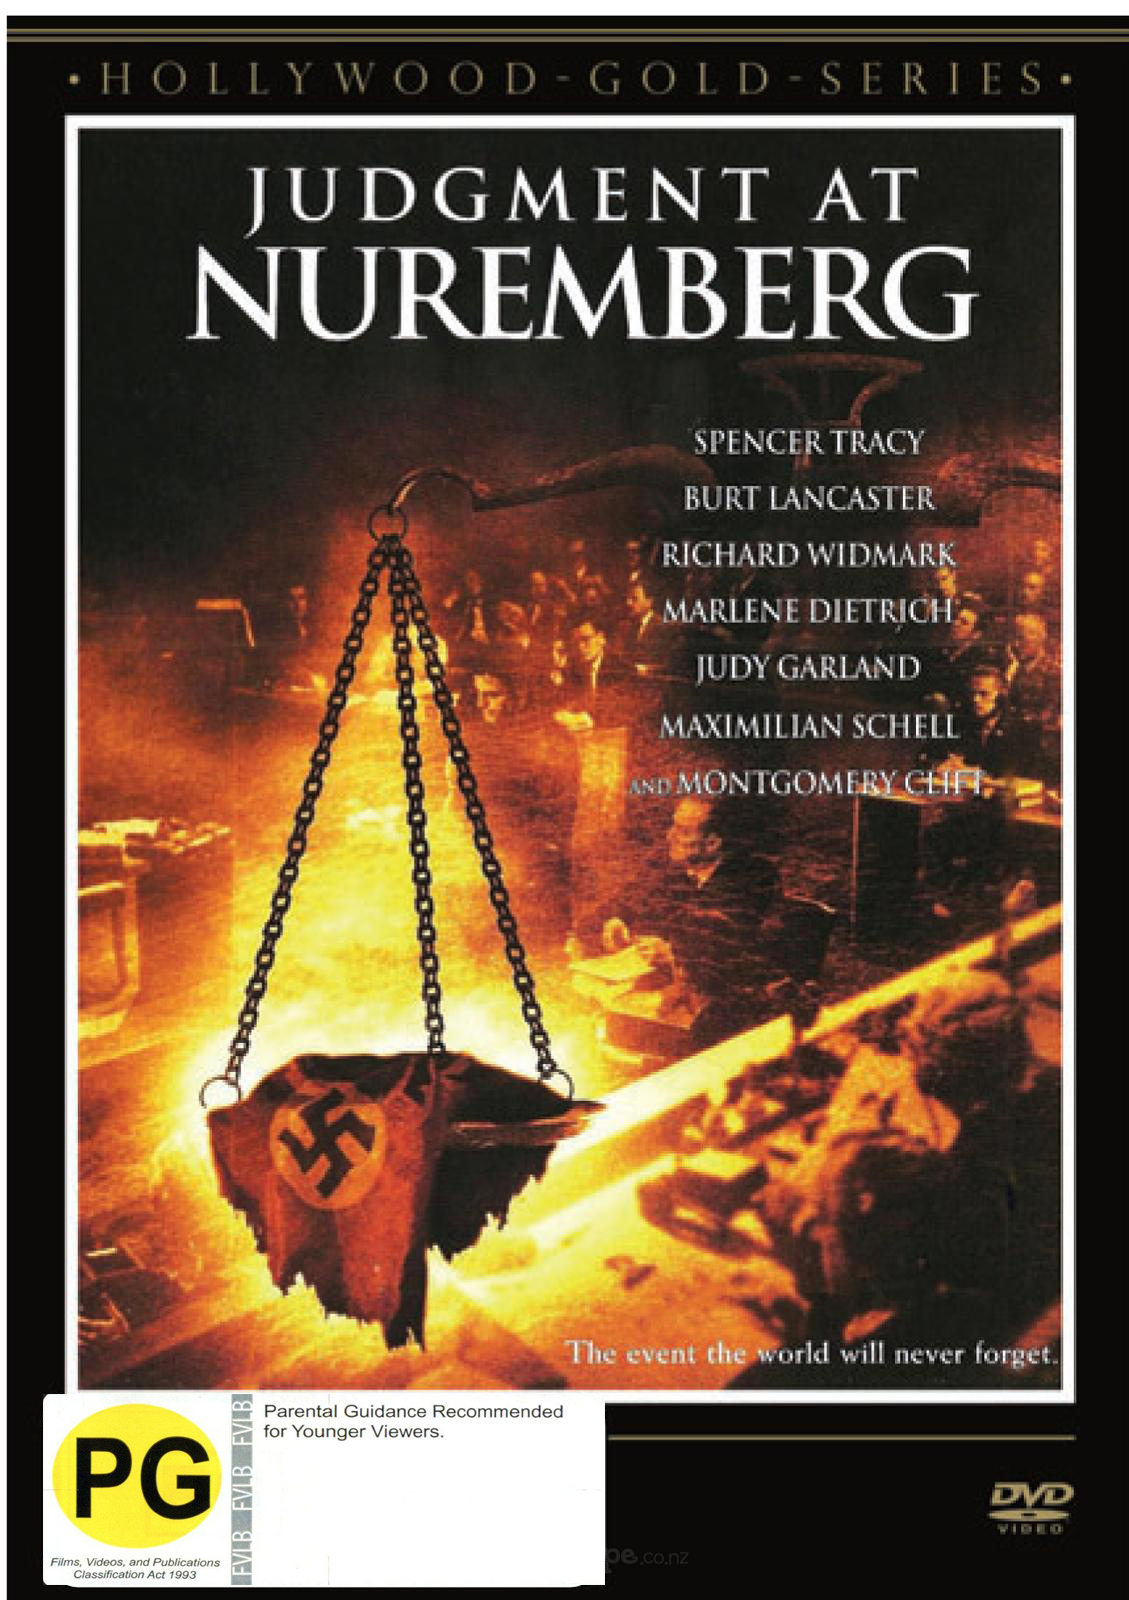 judgment at nuremberg dvd on sale now at mighty ape nz. Black Bedroom Furniture Sets. Home Design Ideas